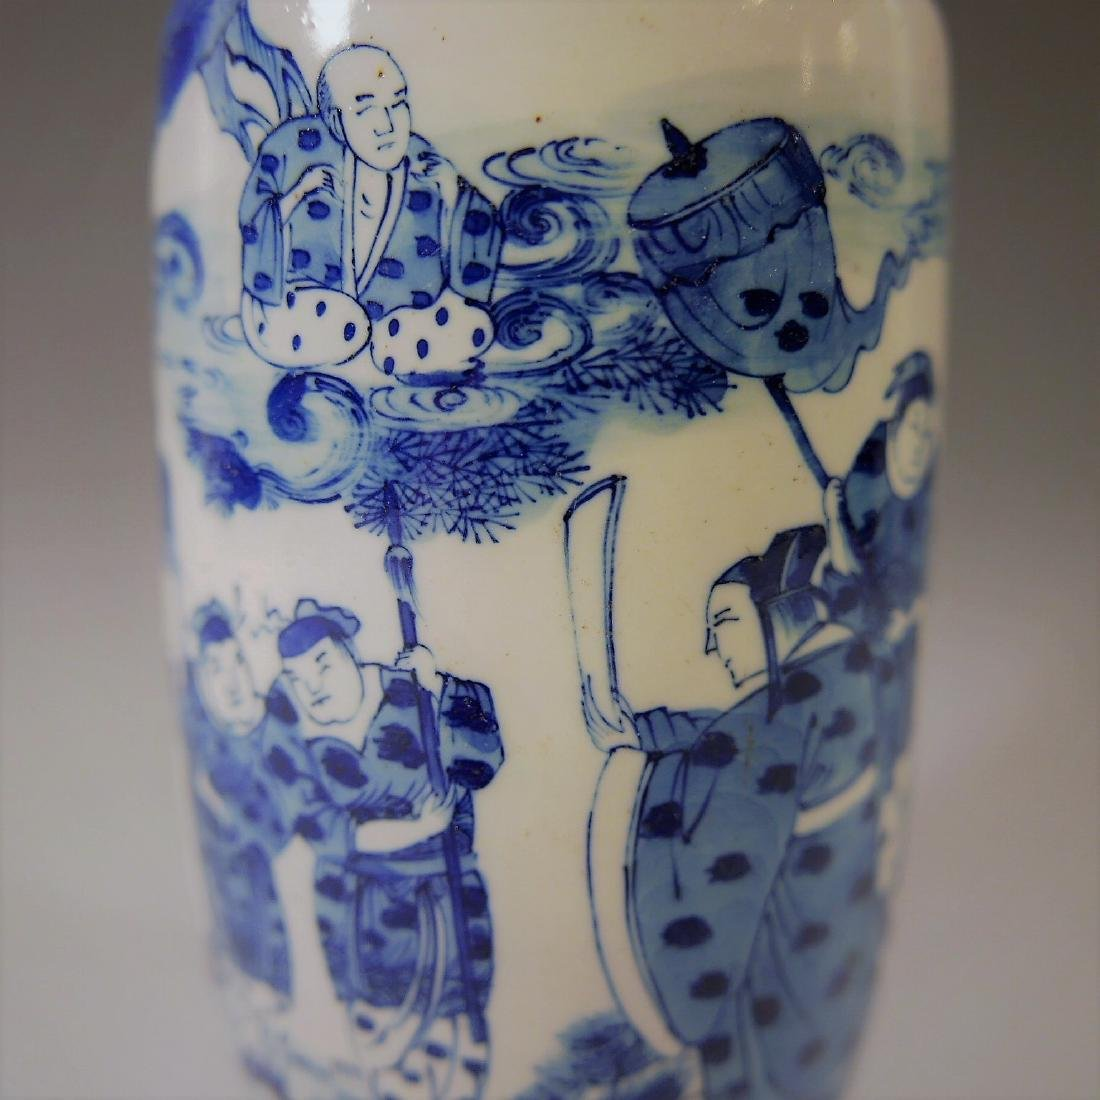 CHINESE ANTIQUE BLUE AND WHITE VASE - 18TH CENTURY - 4